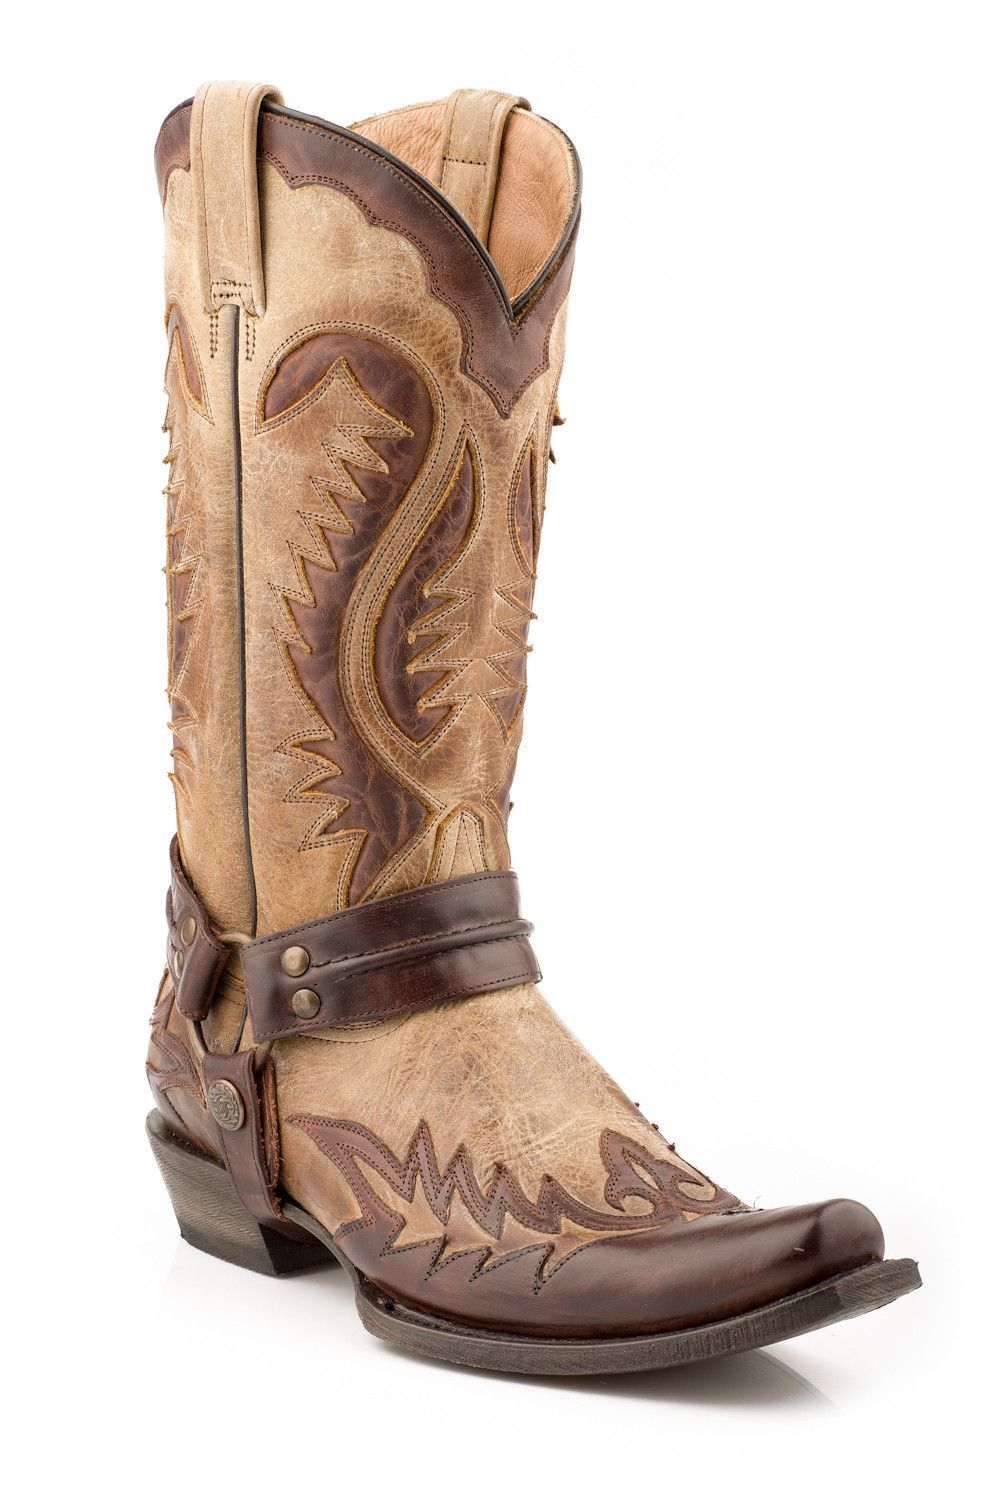 97af2e8b75 Stetson Mens Cowboy Boots Brown Distressed Rocker Toe Harness Leather